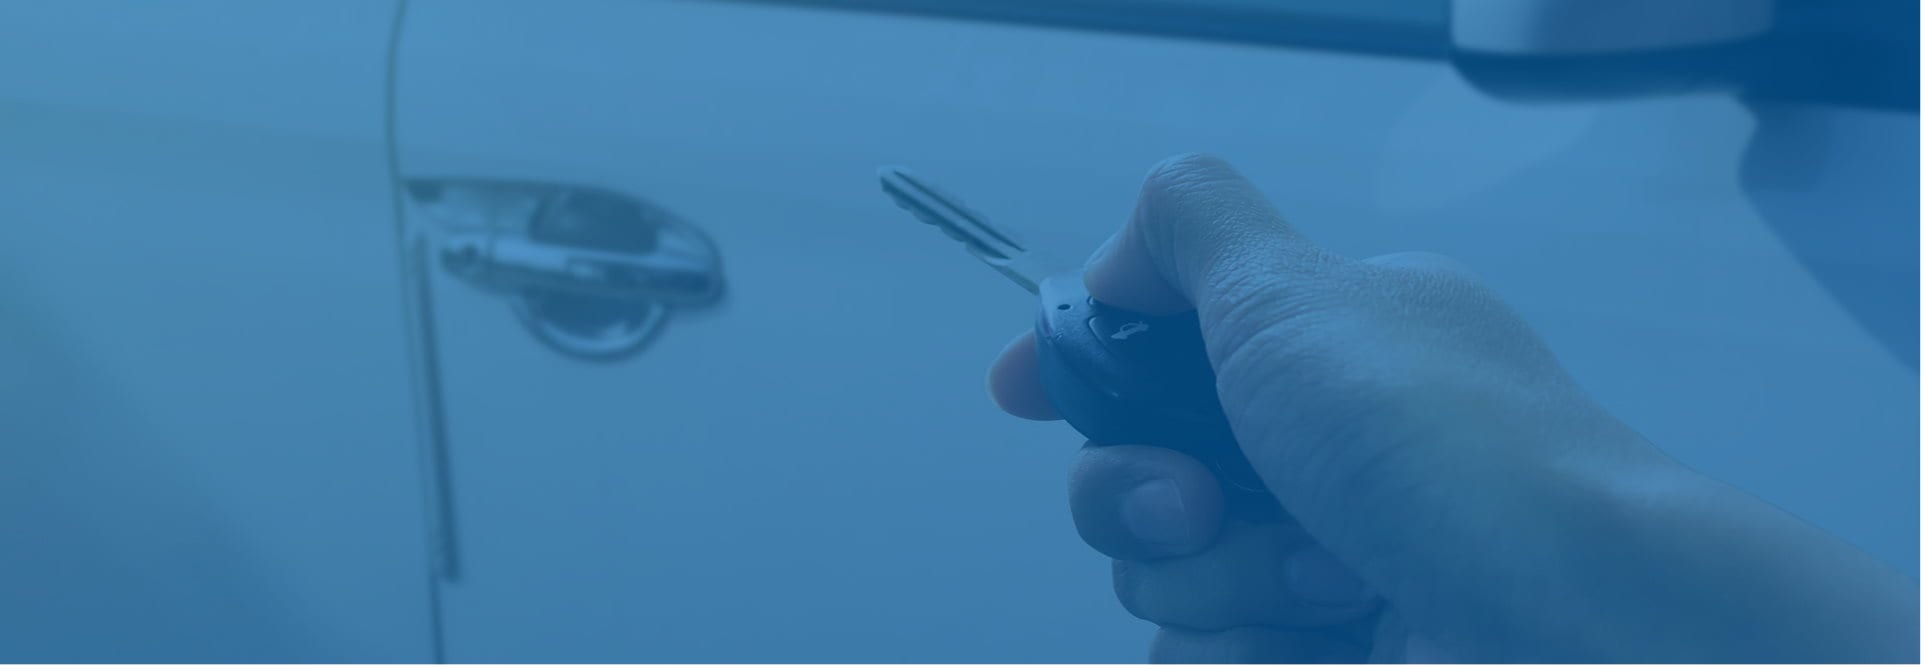 Car and Van Lock Repair and Key Service in Coventry Background